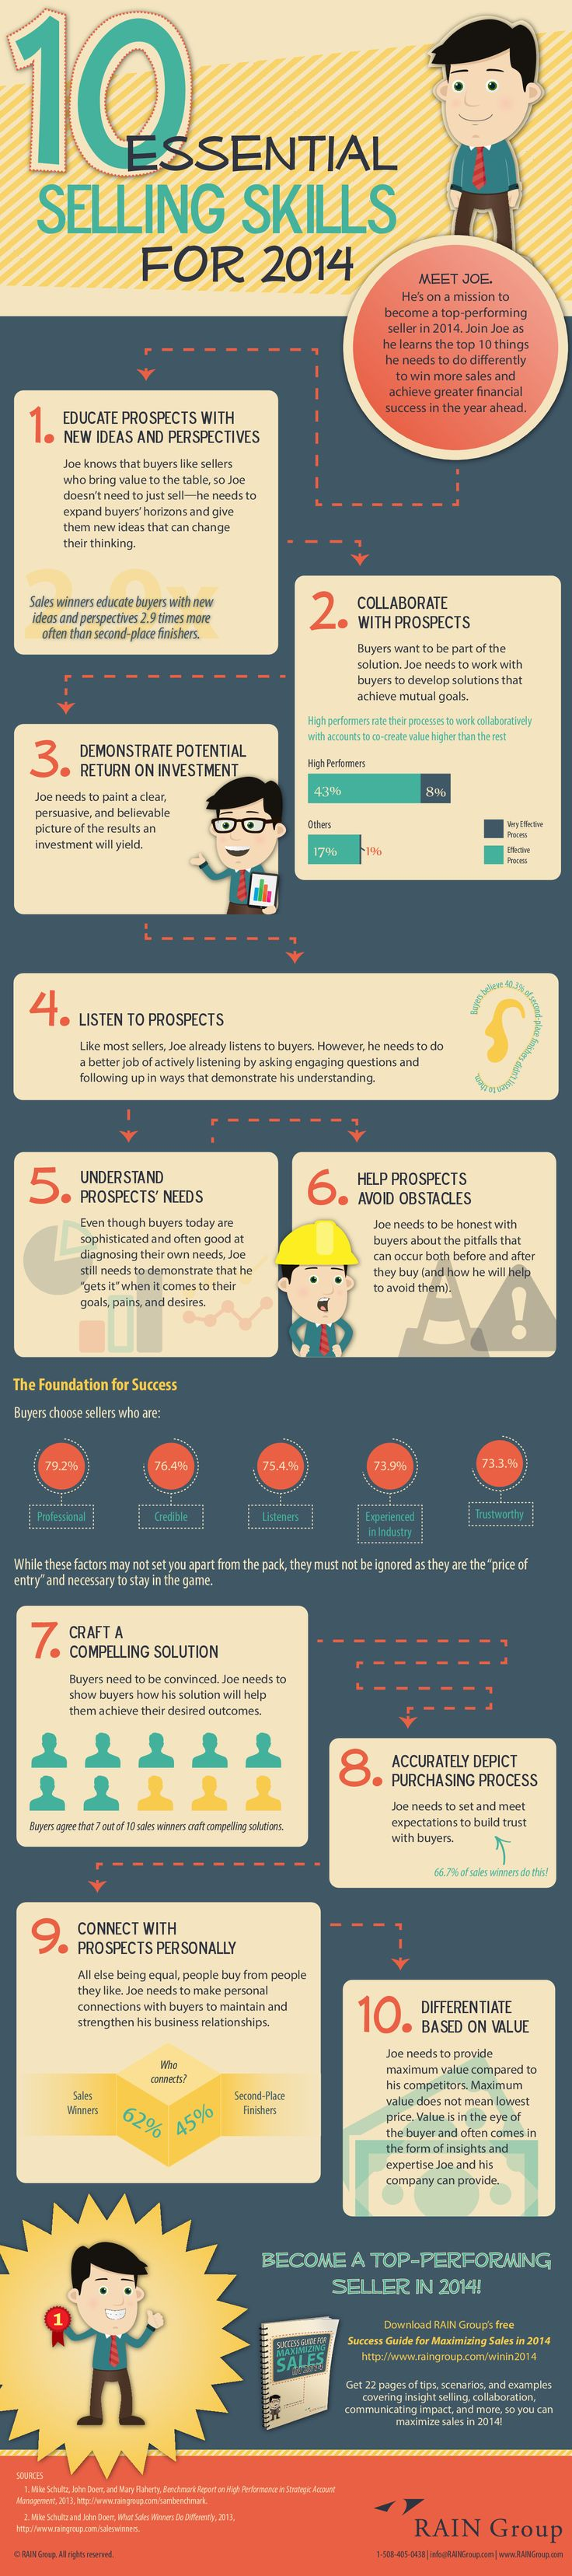 The 10 skills that set sales winners apart from sales losers [Infographic]. Great Content and very relevant